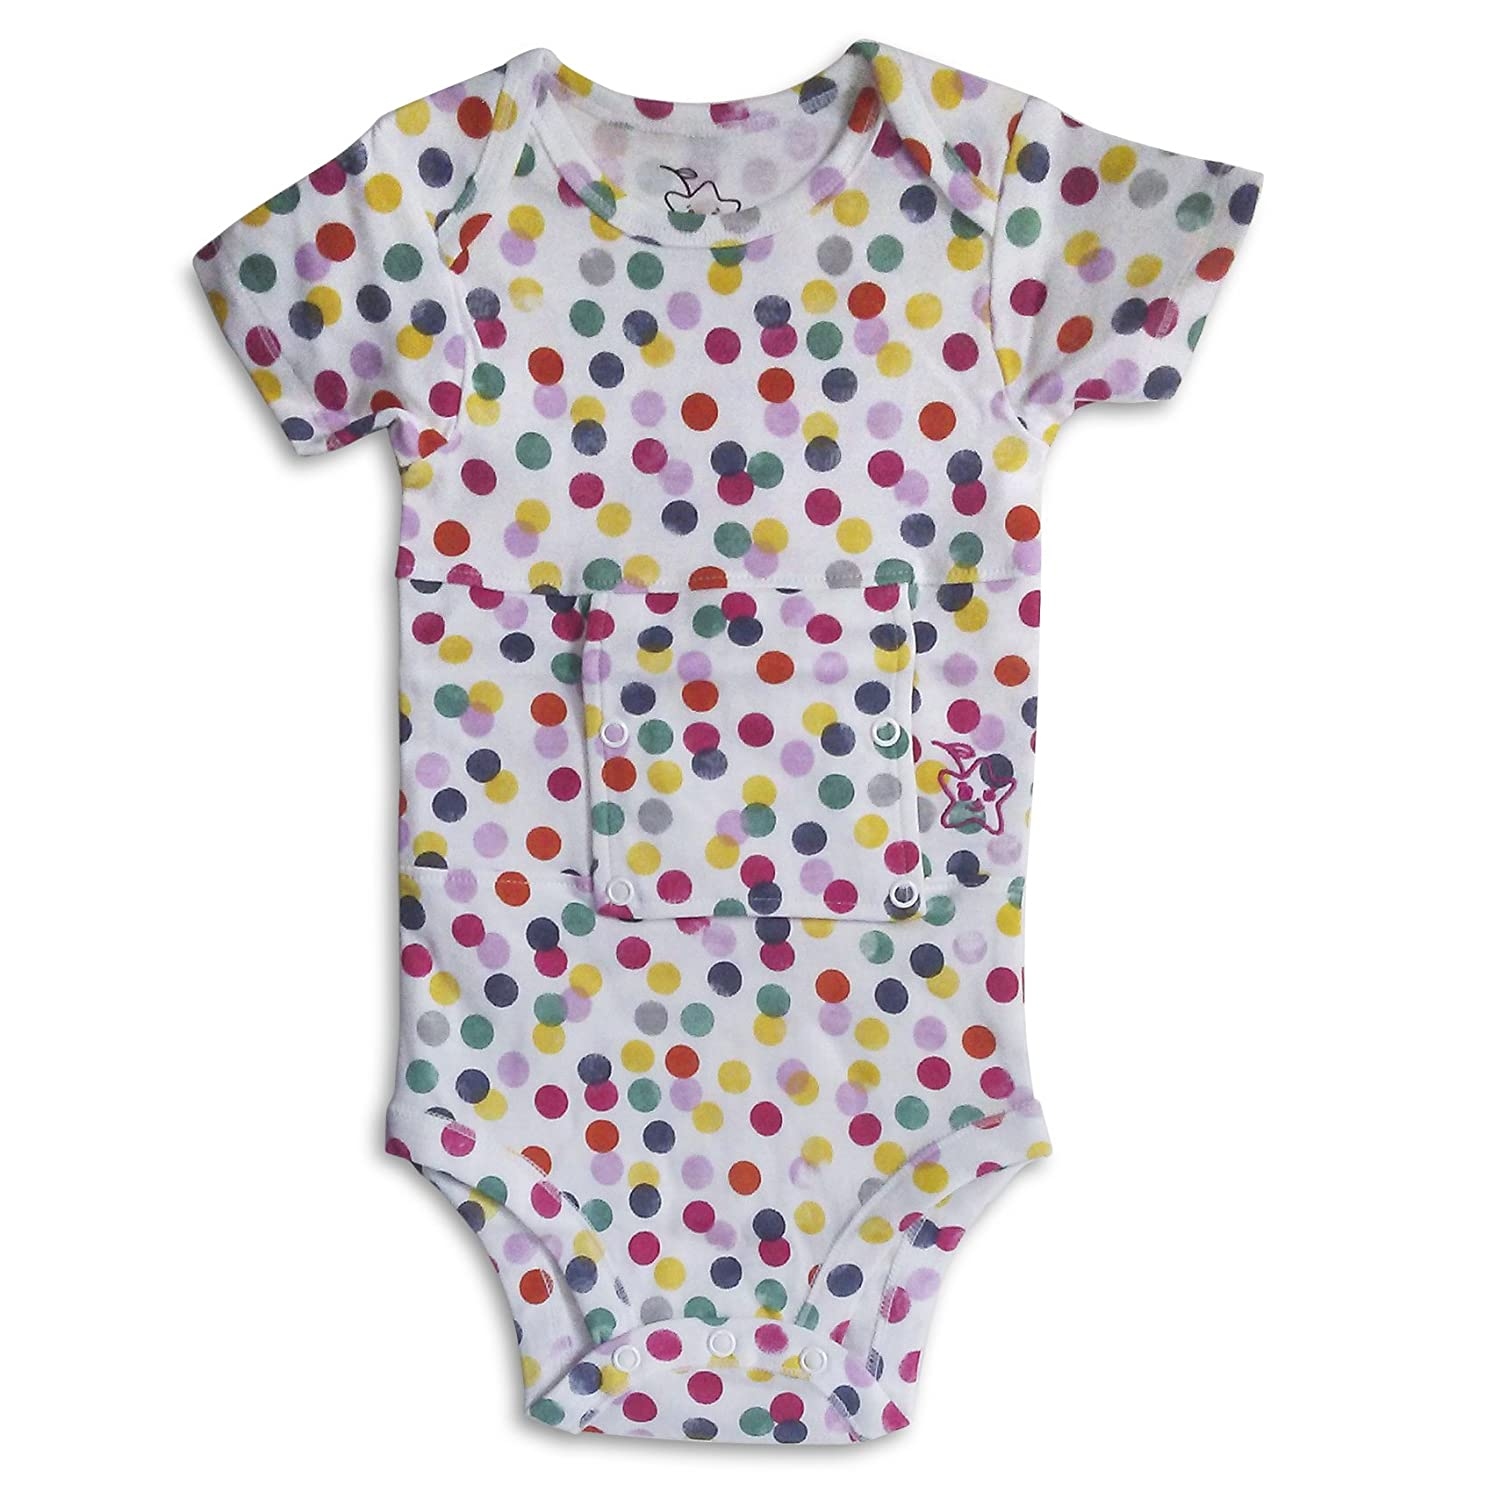 g-tube bodysuit for babies, toddlers and children (2 Fits 20-26 lb, confetti) (9M)